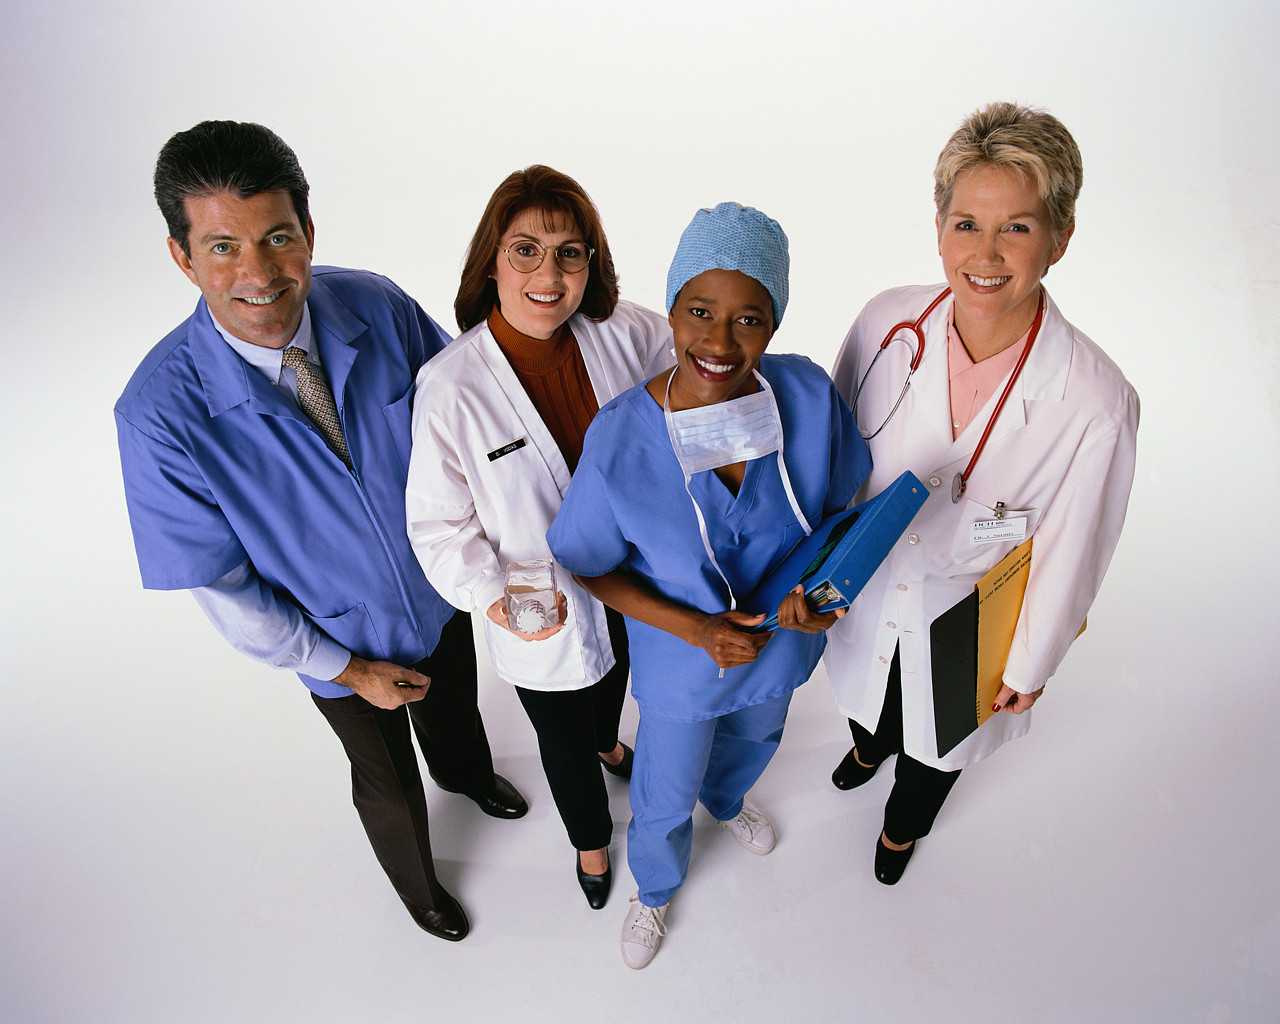 health services Health services degrees can lead you to exciting and rewarding job opportunities we offer information you need about health services and healthcare degrees.